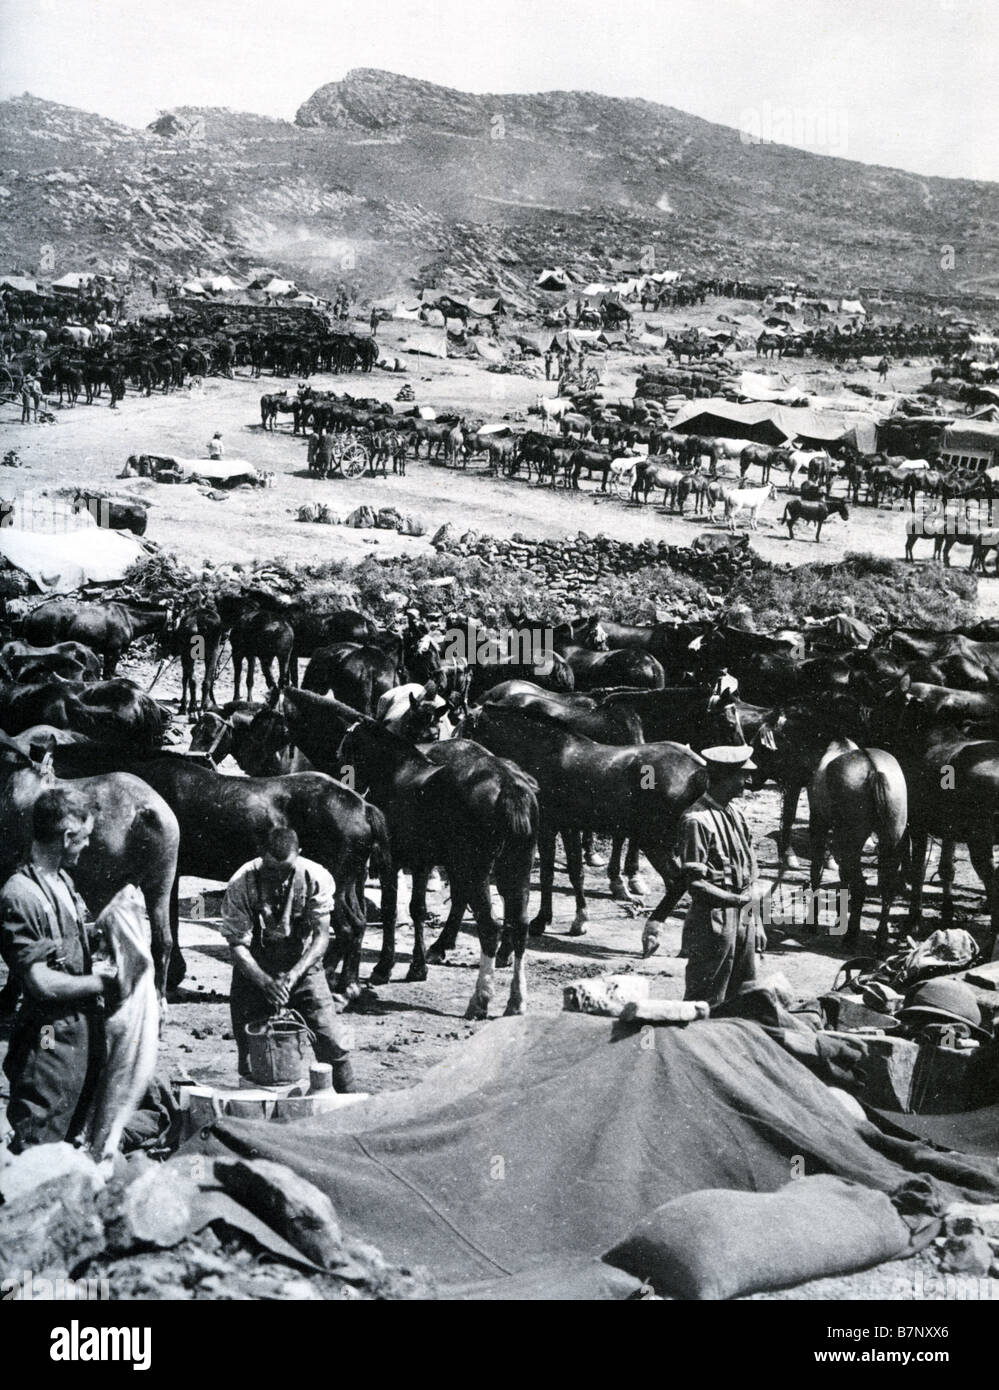 SULVA BAY  British army horses  landed on the Turkish coast in 1915 during WWI - Stock Image